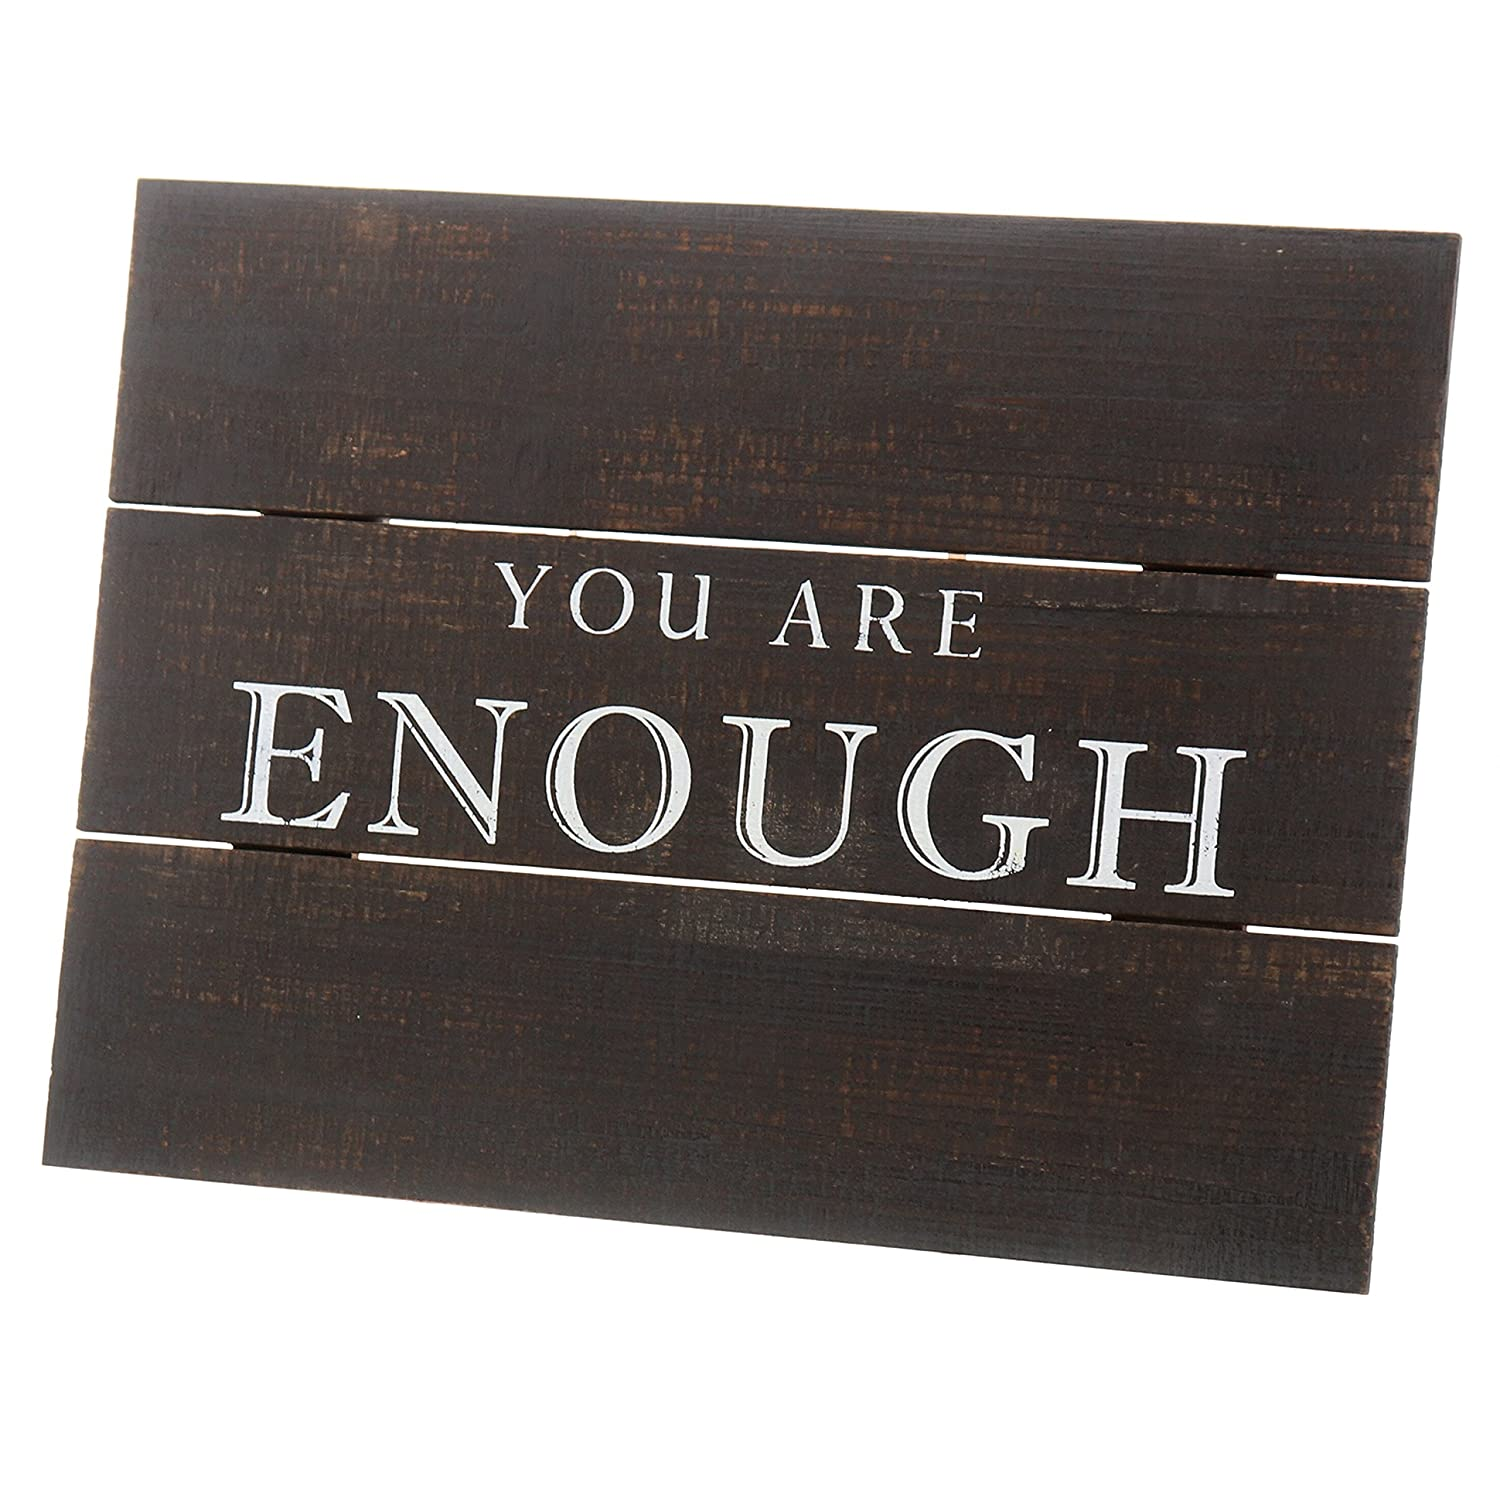 Barnyard Designs You are Enough Distressed Wood Plaque Primitive Country Farmhouse Home Decor Sign 16 x 12